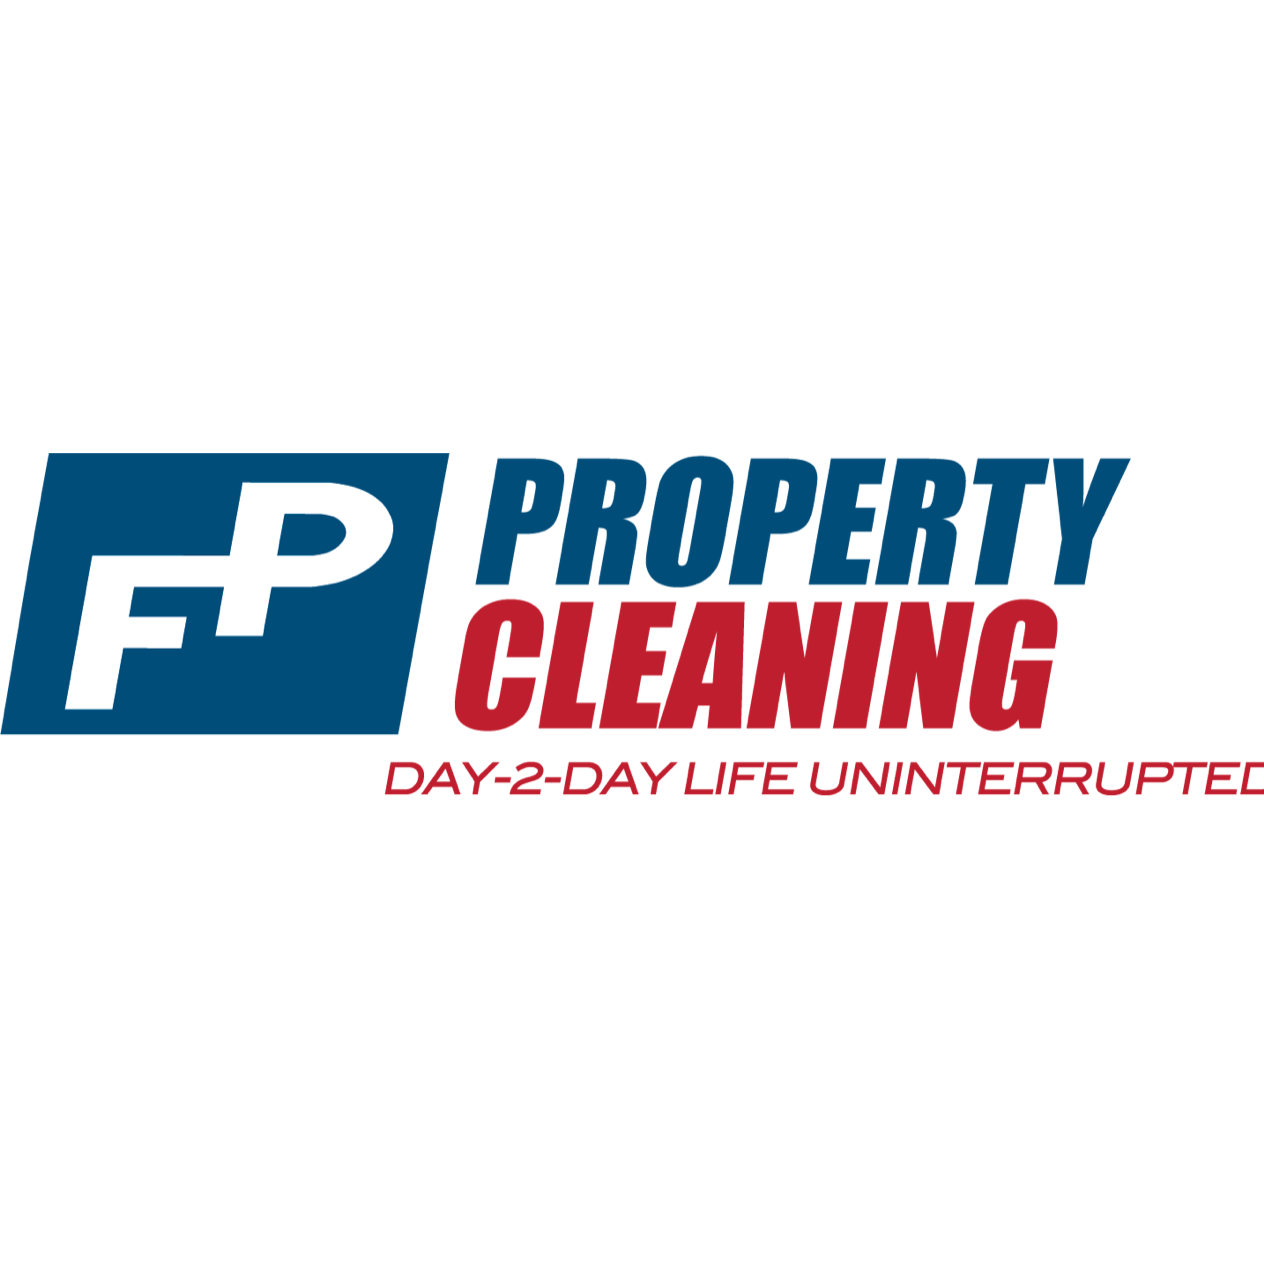 FP Property Cleaning